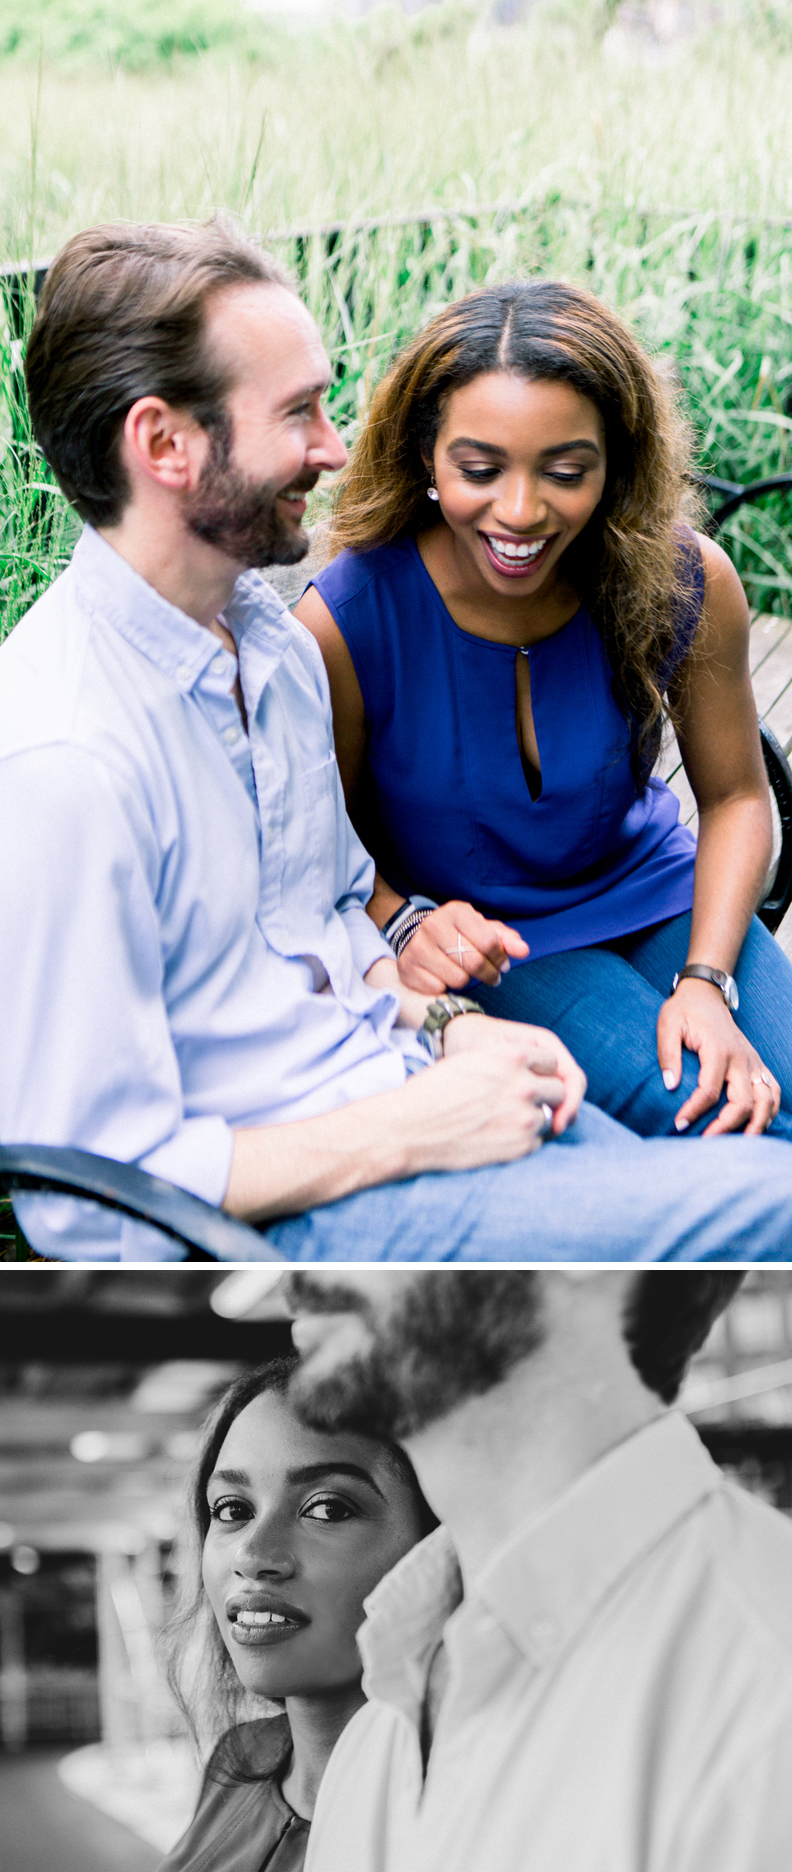 Kia_Nick_Engagement_Mo_Davis_Photography.jpg